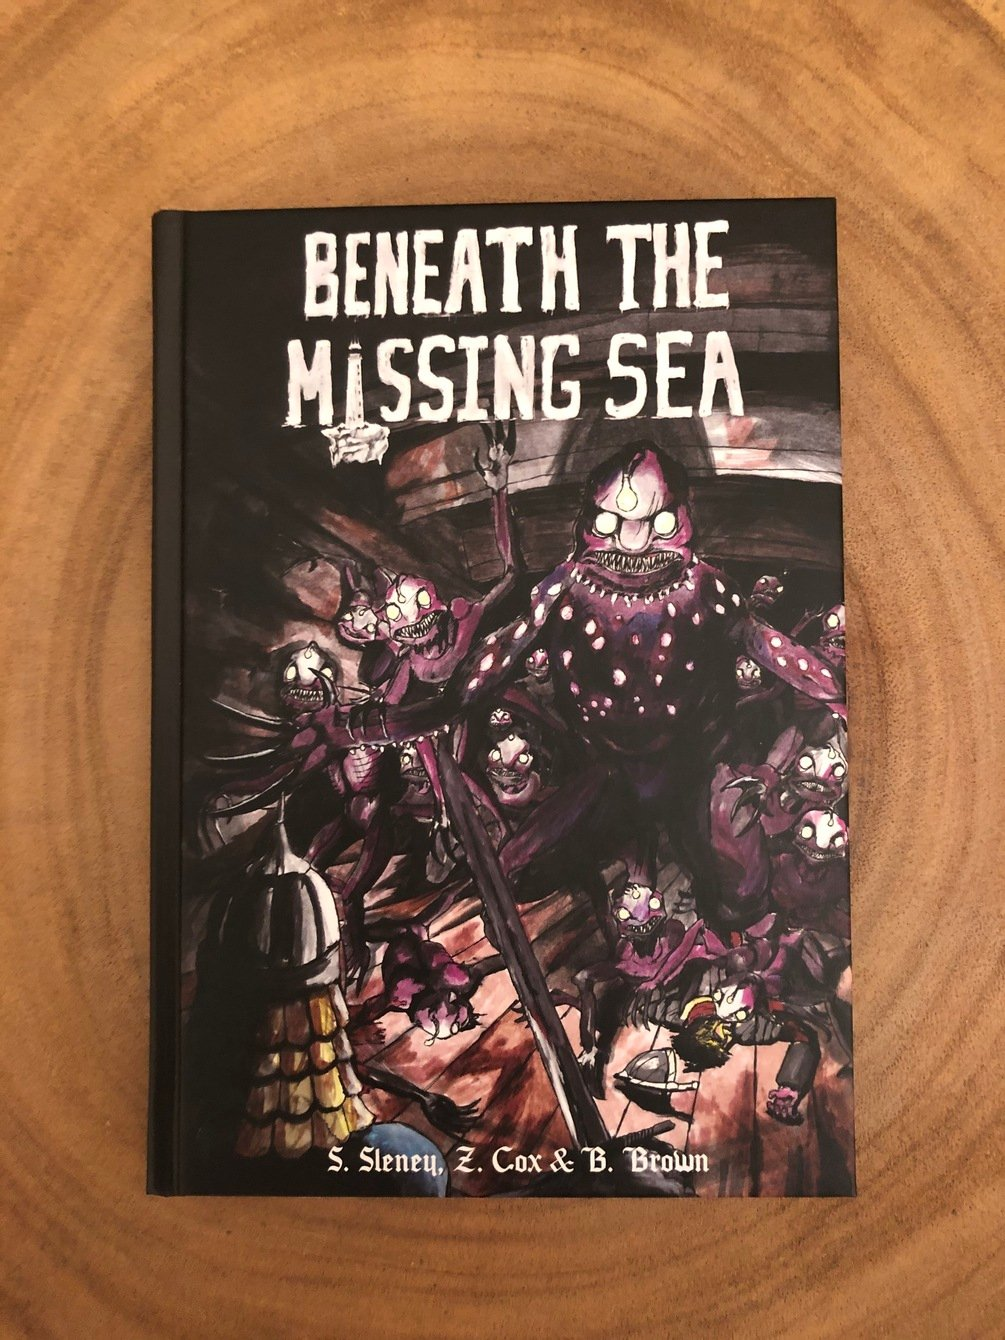 Best Left Buried: Beneath The Missing Sea